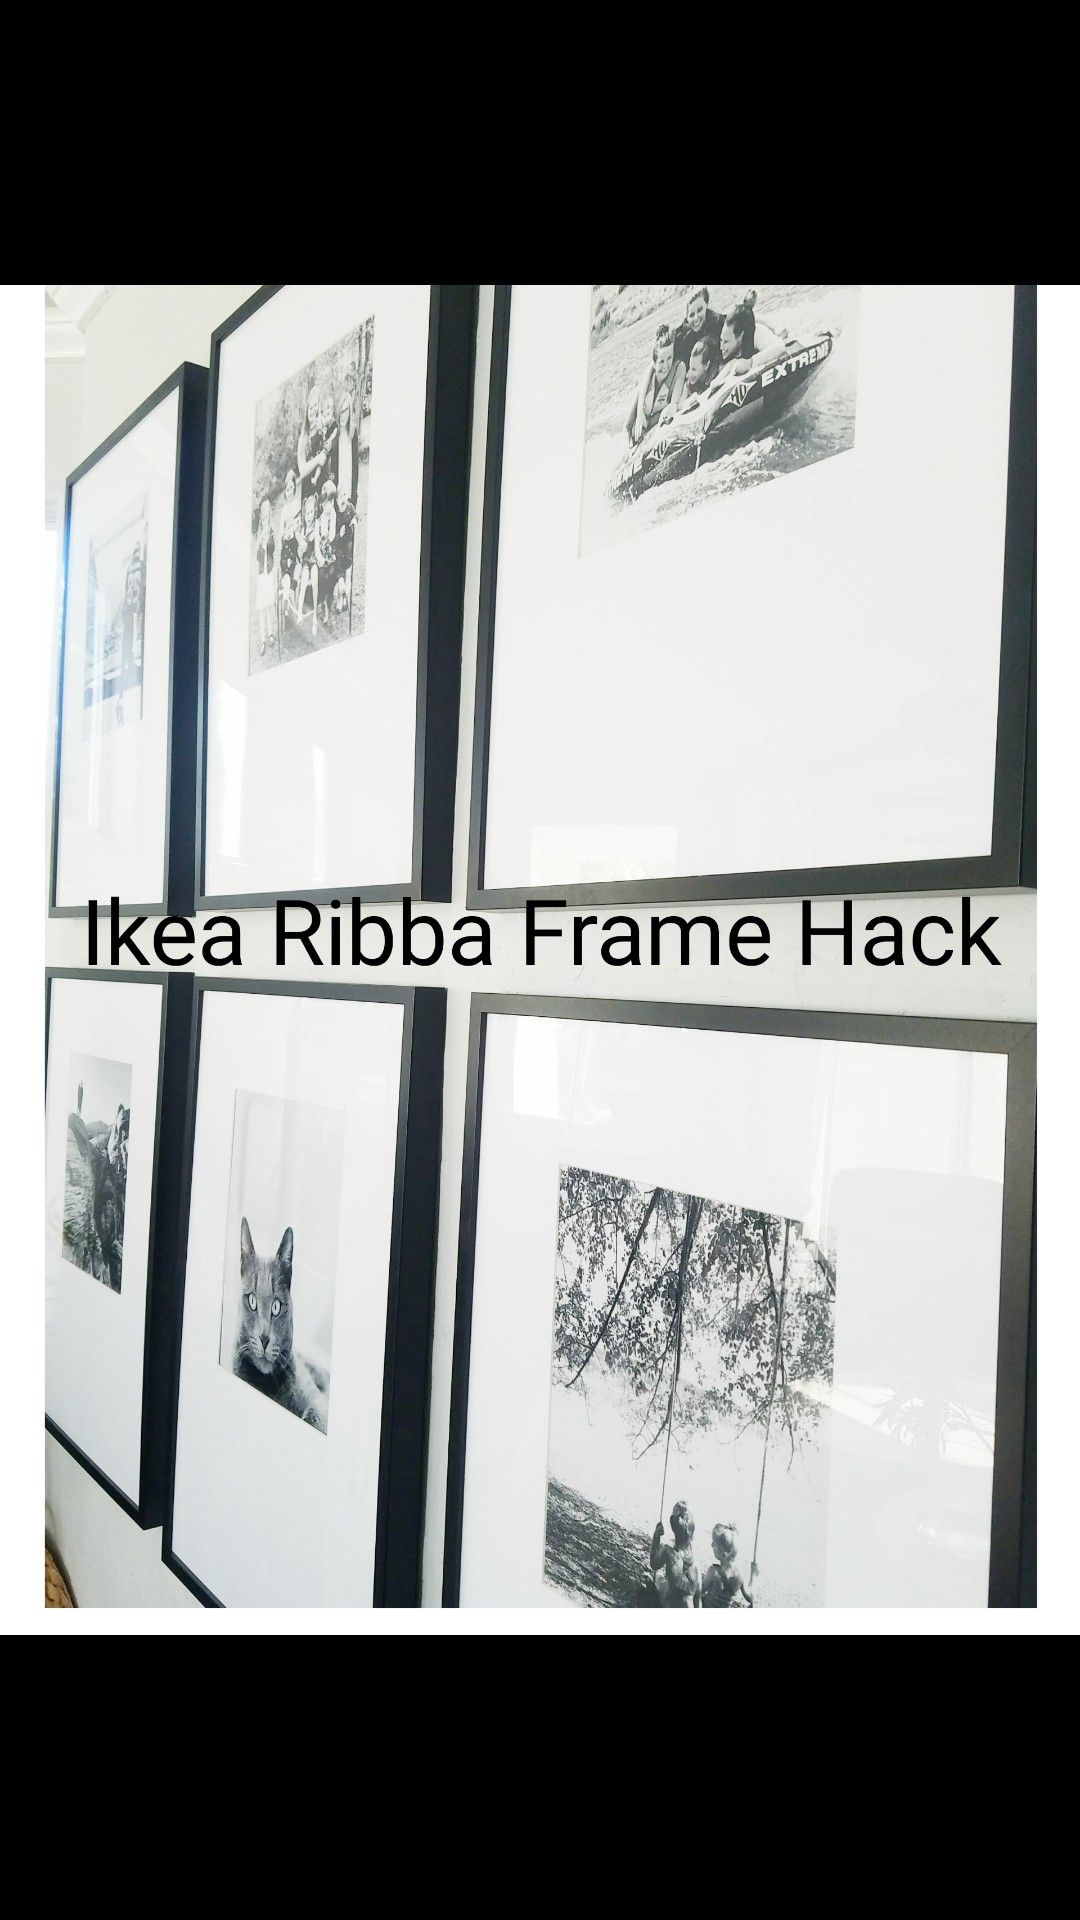 Ikea Ribba Frame Hack Offset Mat Photo Wall Gallery Wall Photo Wall Gallery Ikea Gallery Wall Gallery Wall Frames